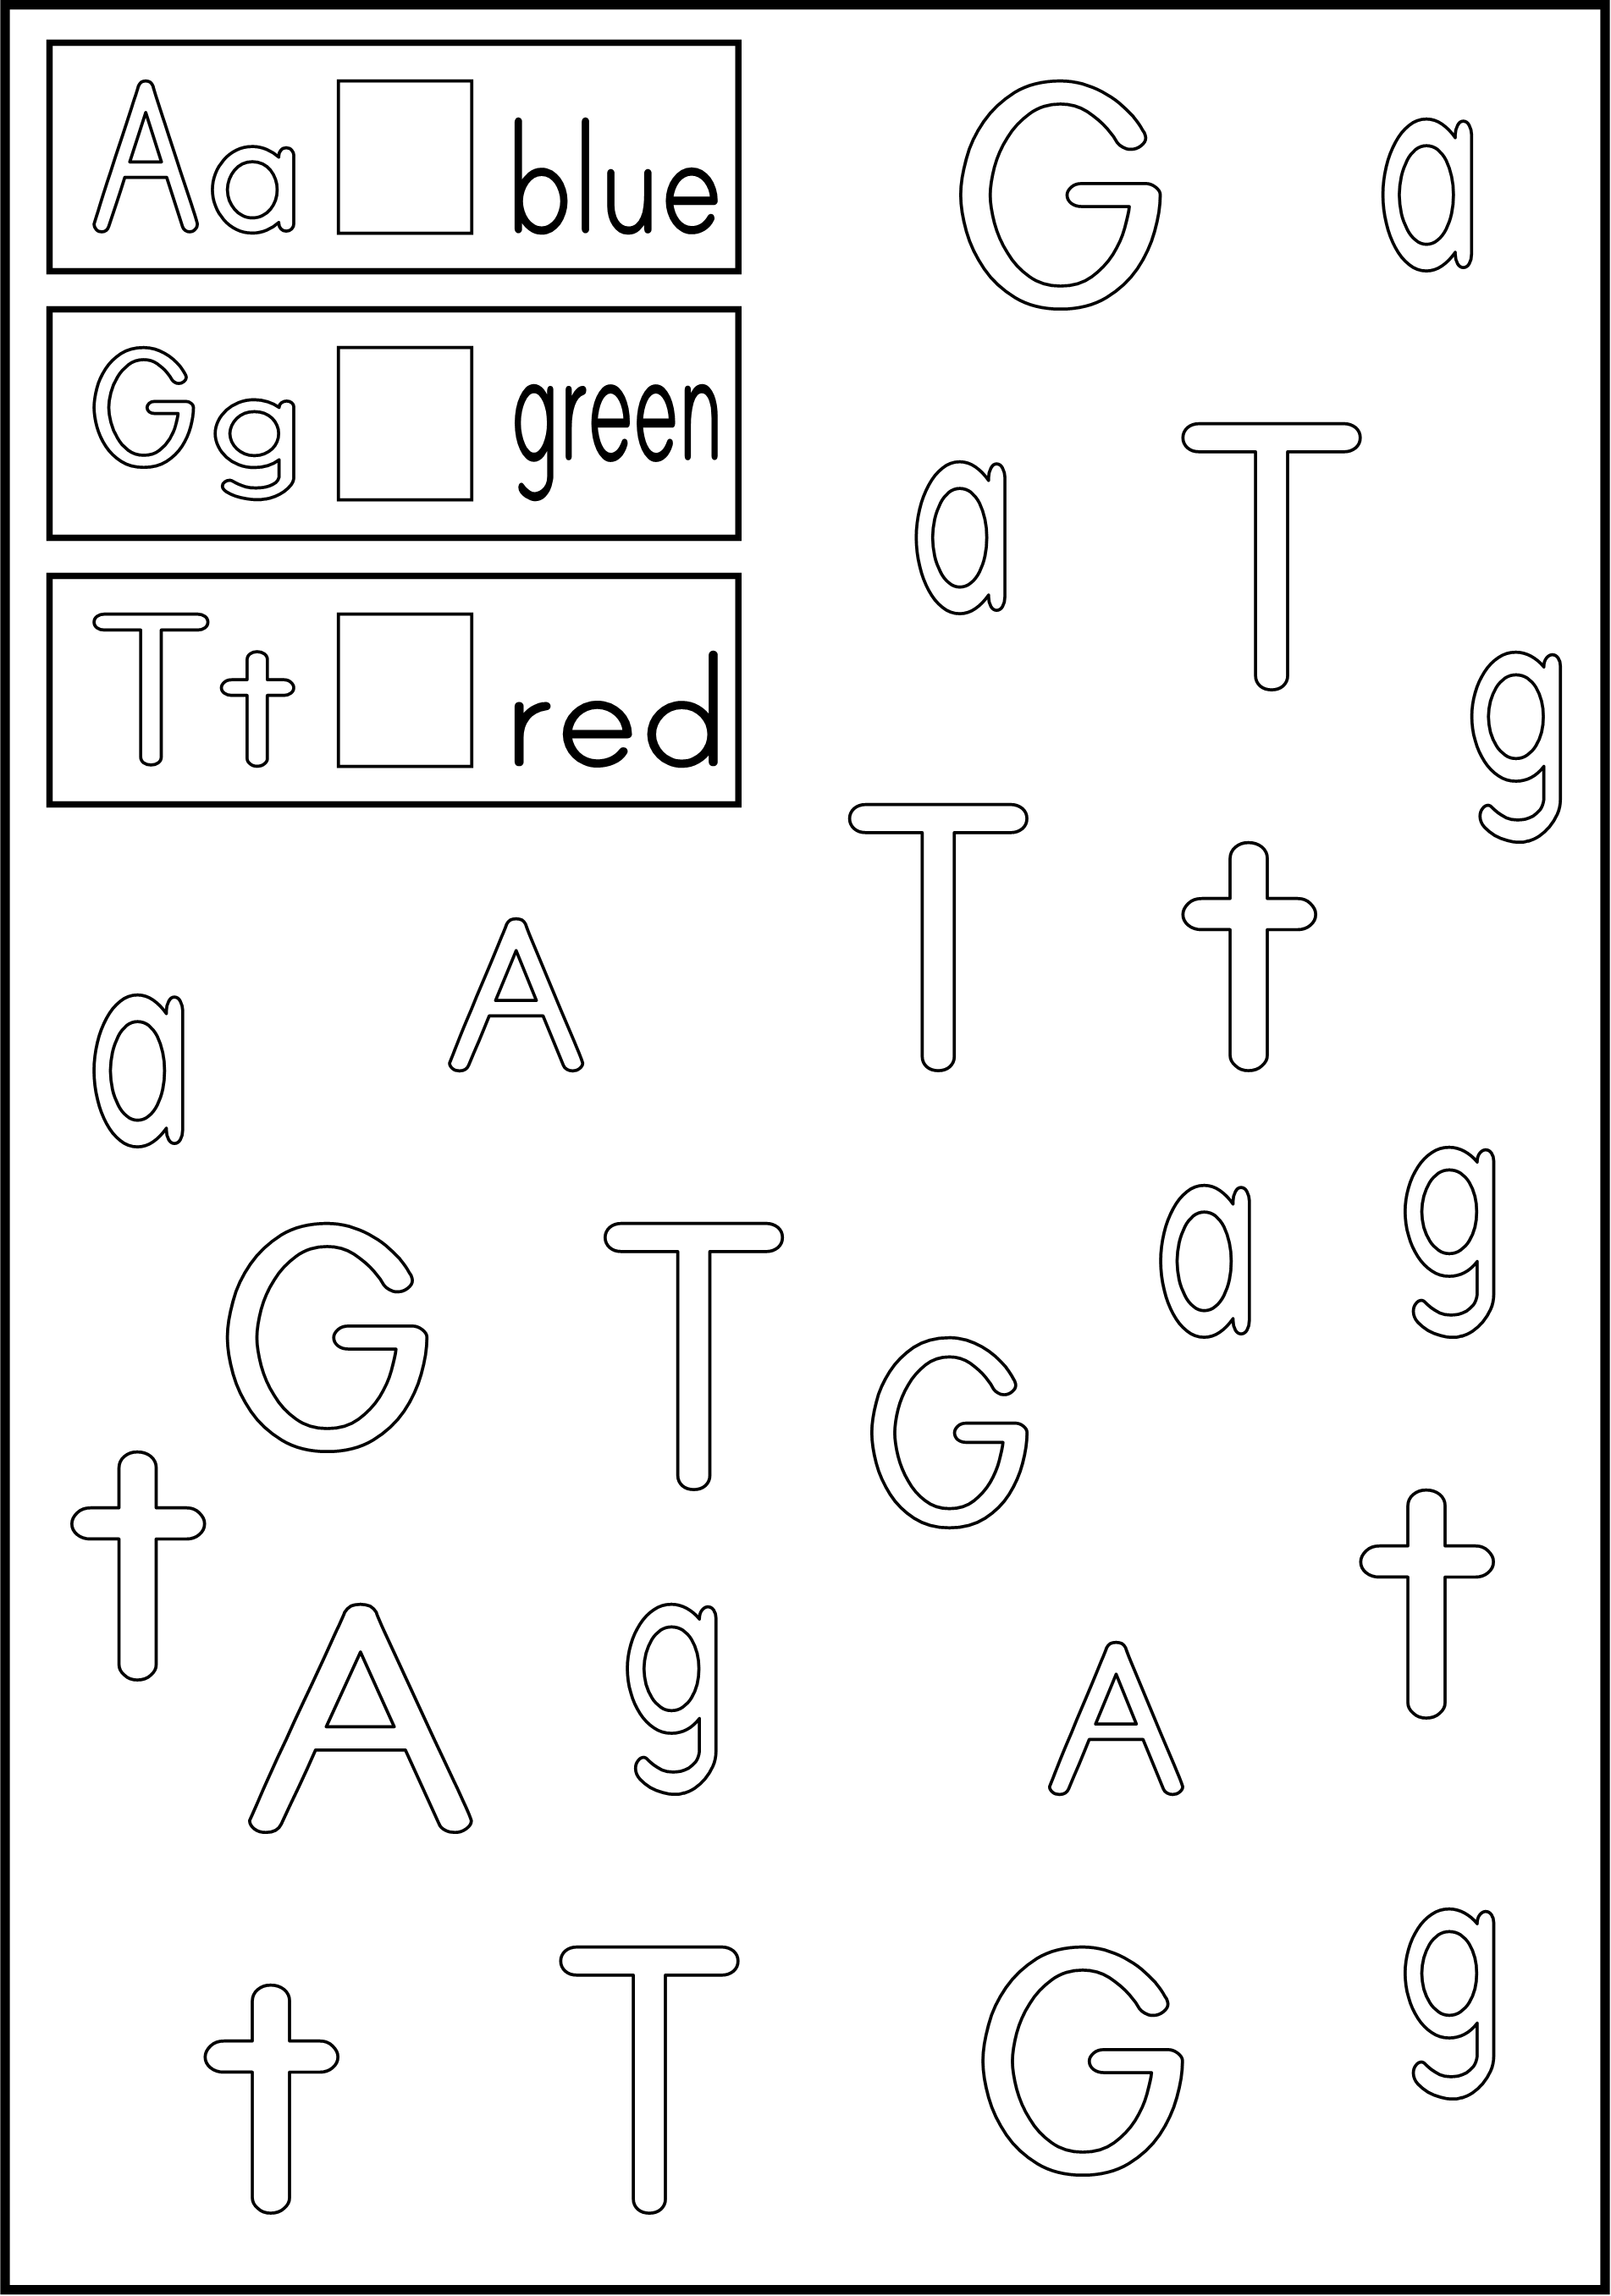 Worksheets Alphabet Recognition Worksheets various alphabet worksheets i like that it mixes different letters link to letter recognition prek kindergarten